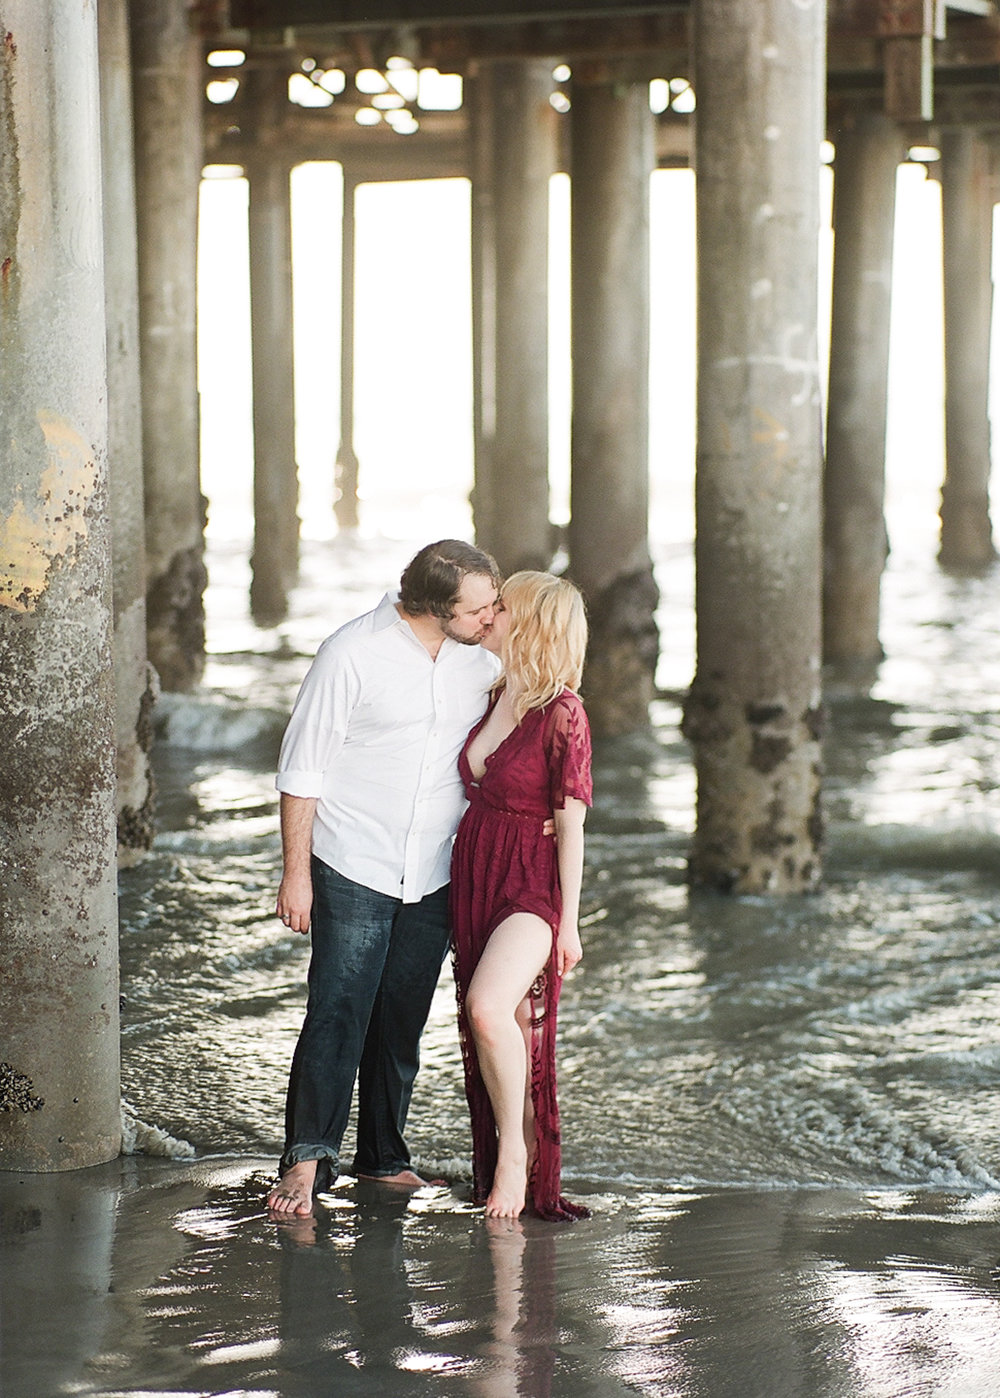 Bonphotage California Fine Art Engagement Photography